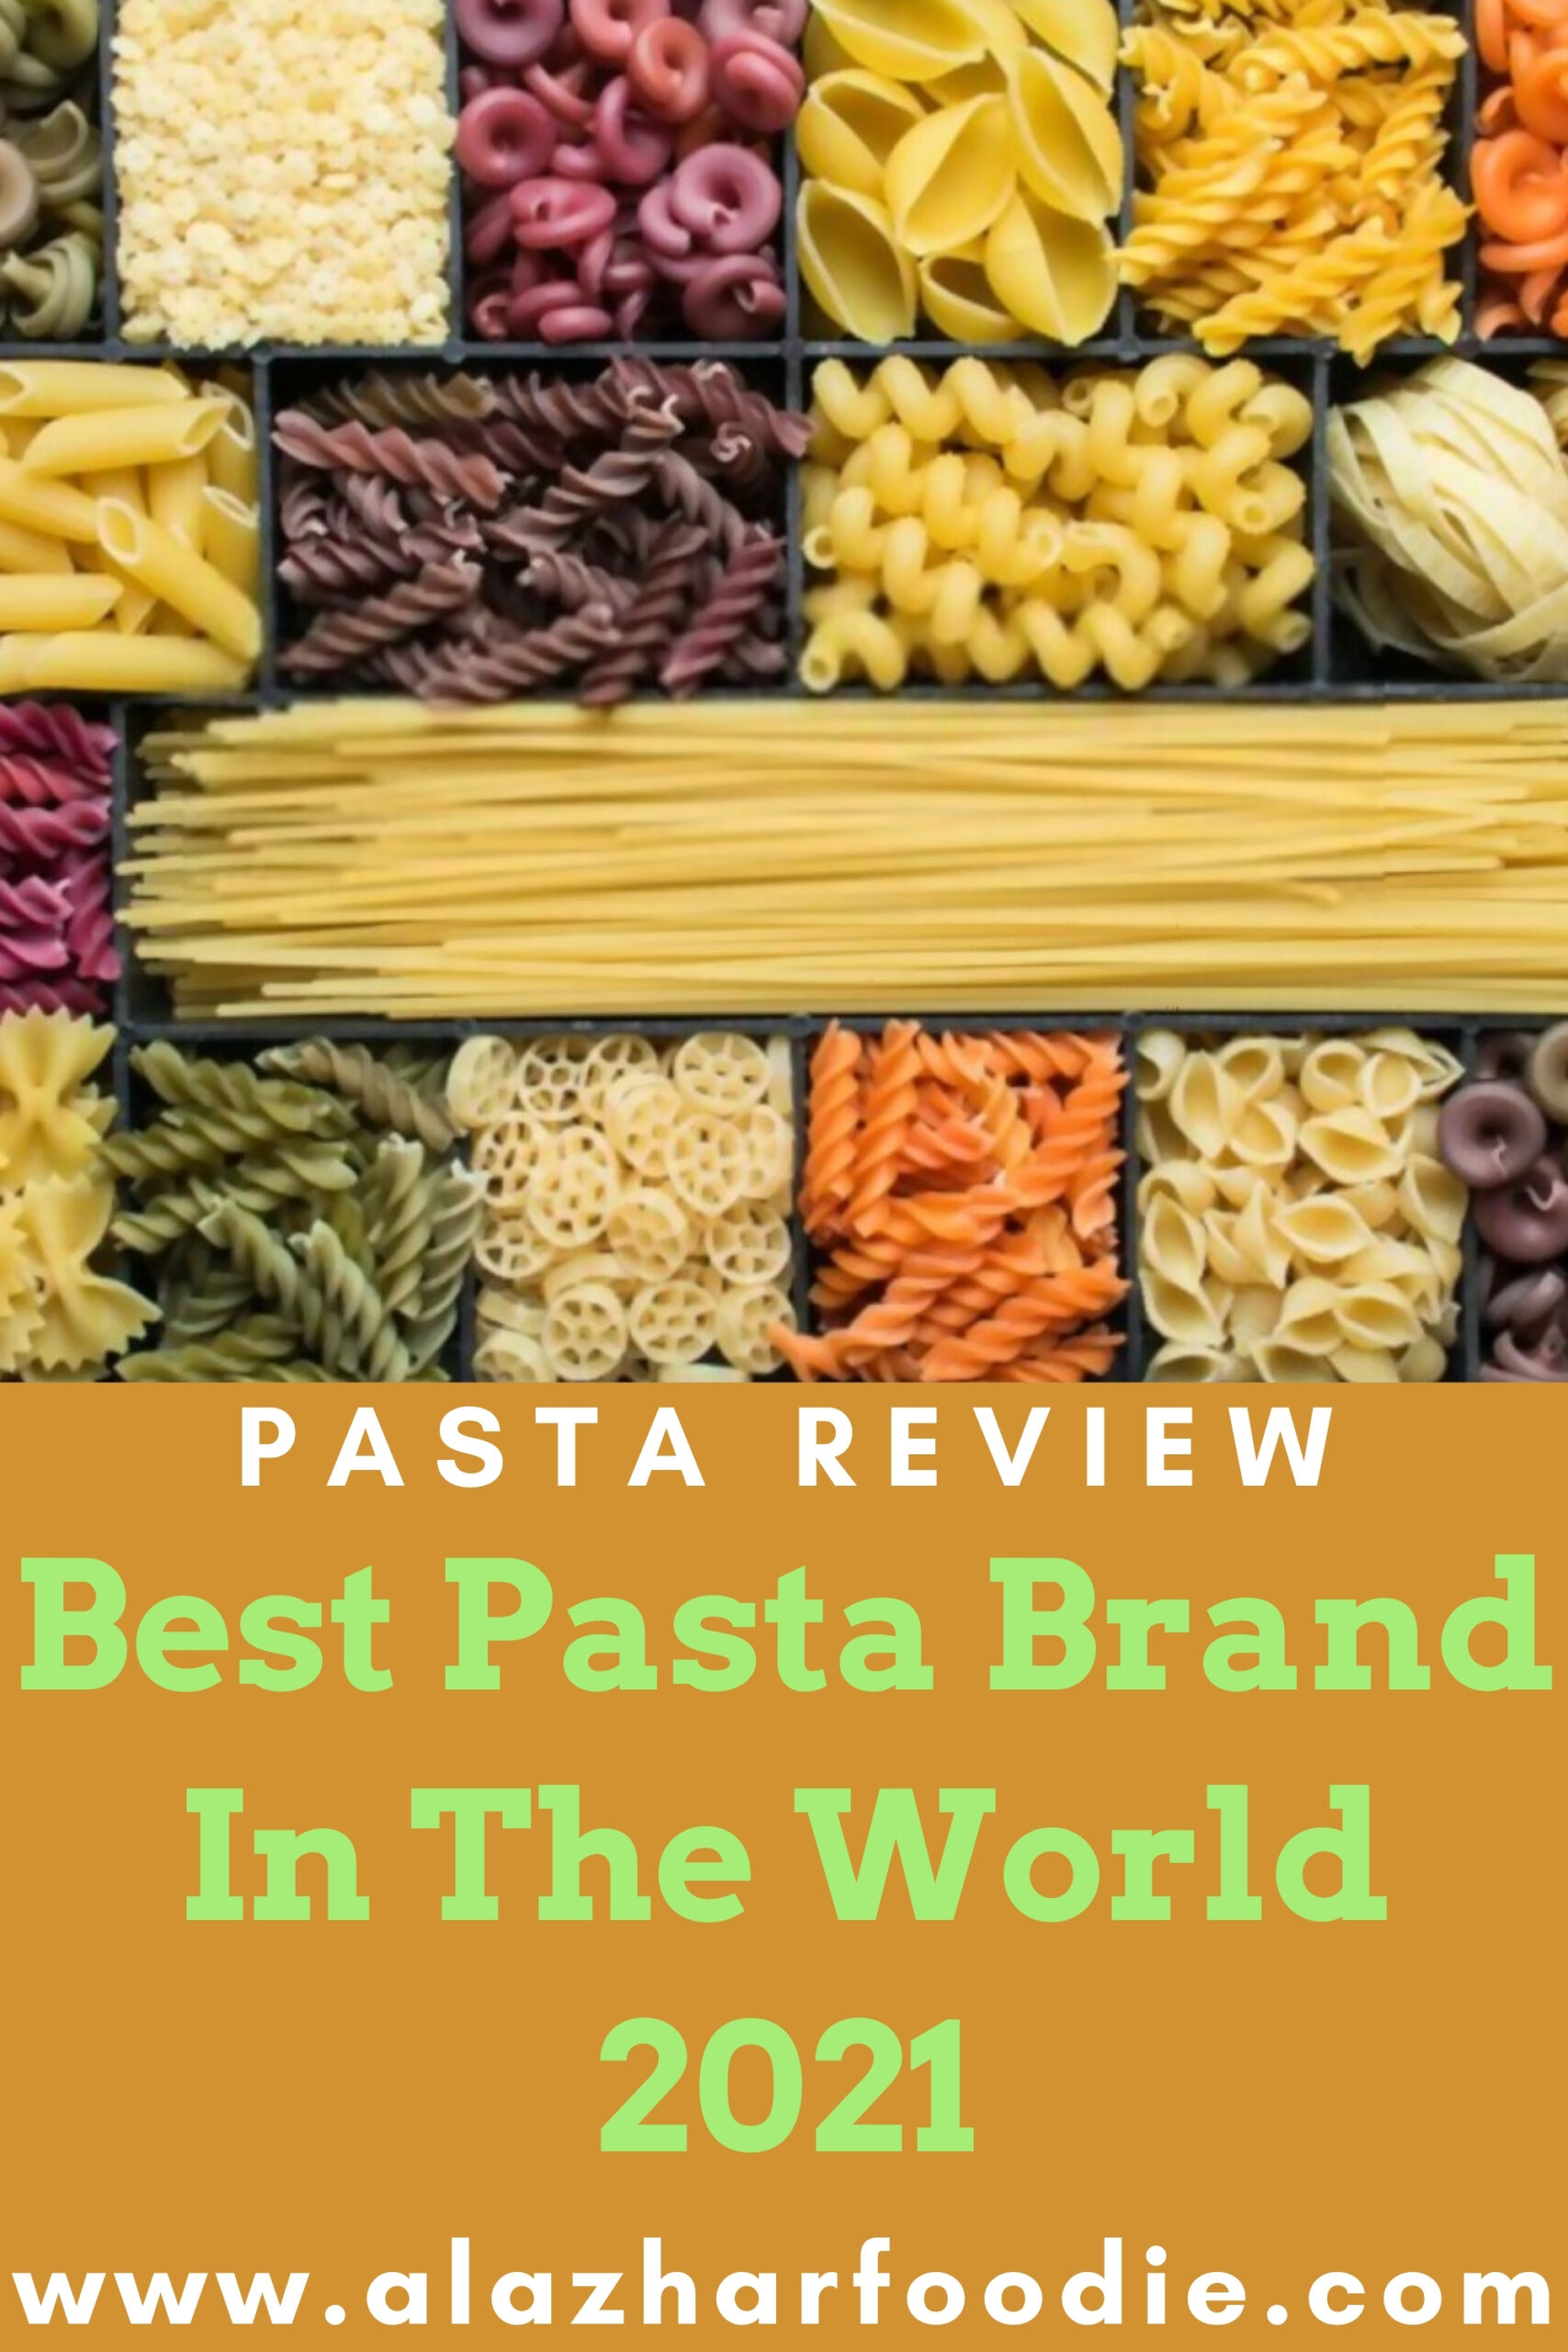 Best Pasta Brand In The World 2021 scaled